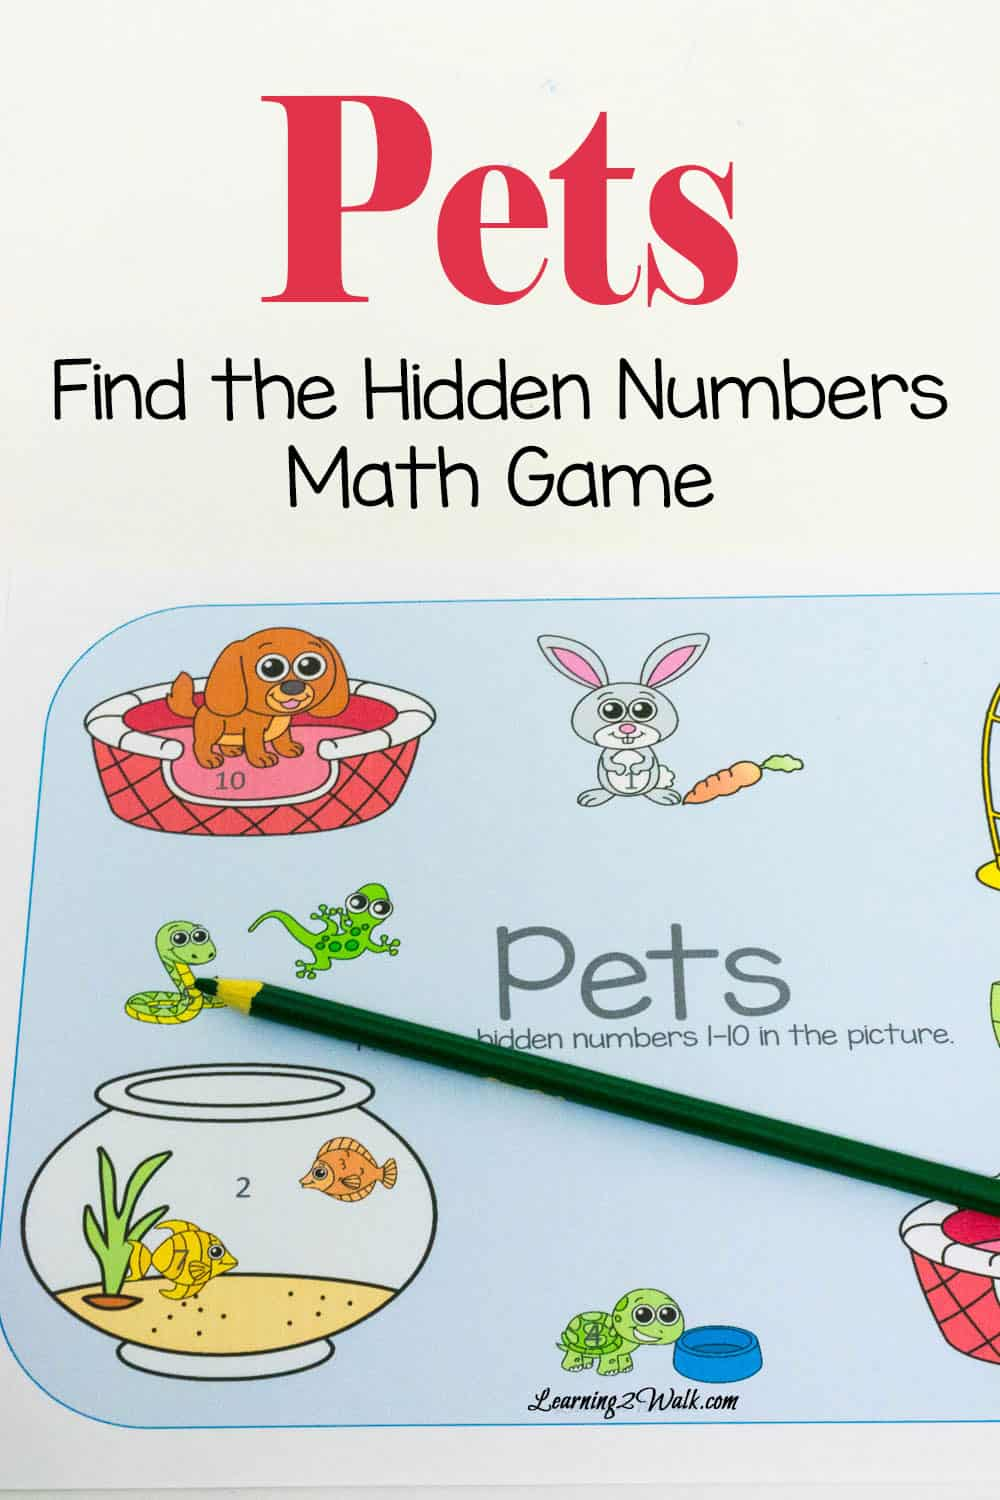 Finally A Fun Way To Help With Number Recognition Without Wall Charts This Find The